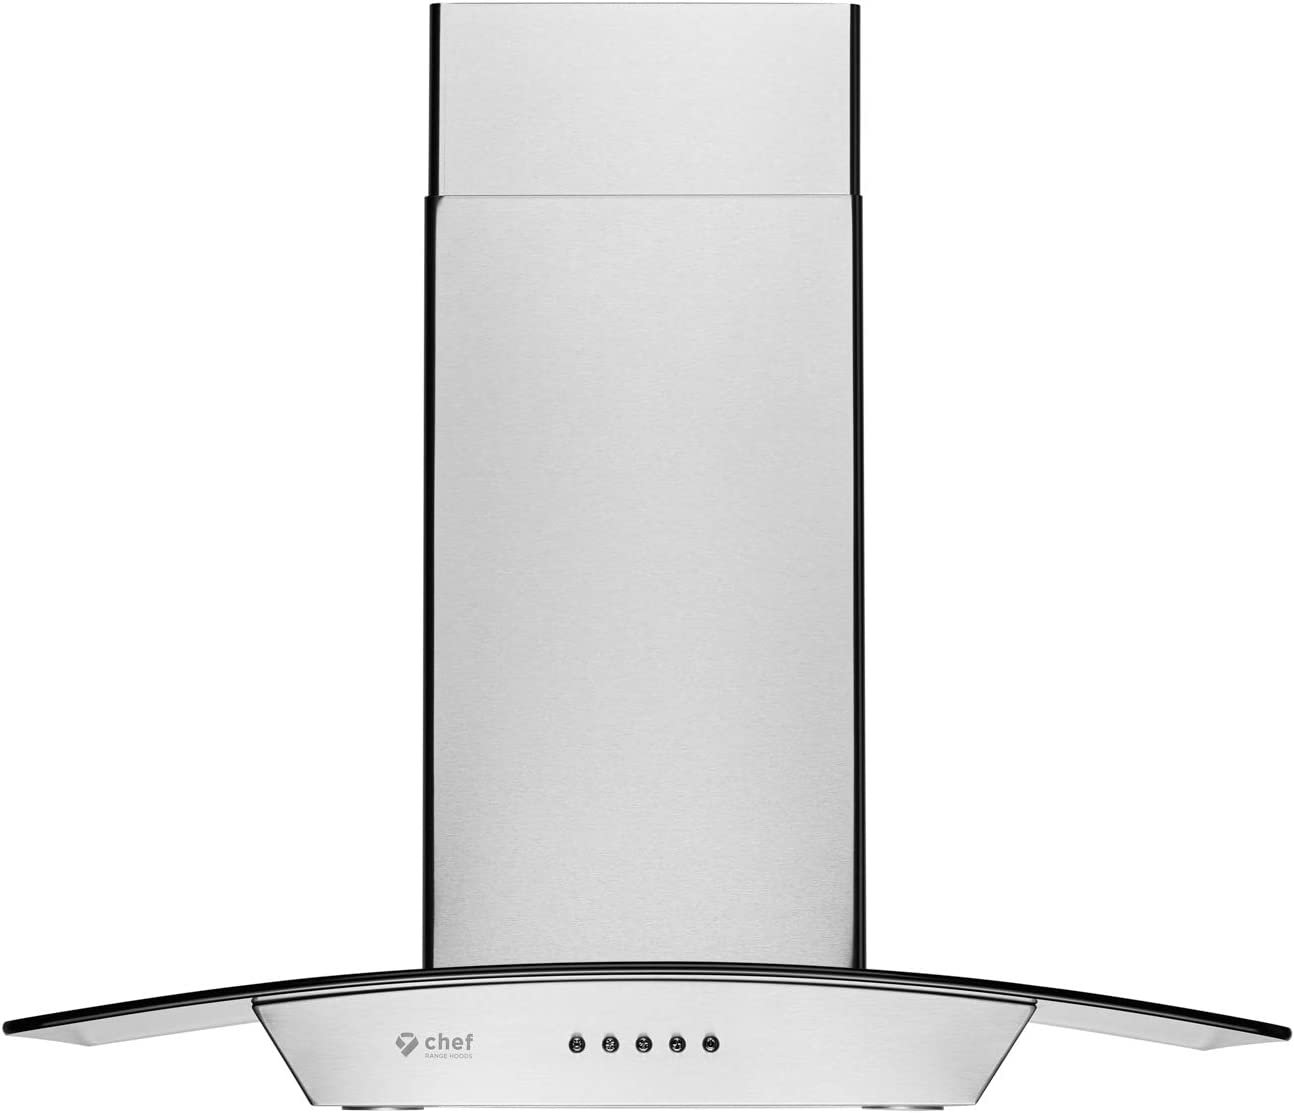 """Hauslane   Chef Series Range Hood WM-630 36"""" Wall Mount Range Hood   European Style with Stainless Steel and Tempered Glass   3 Speed, 750 CFM, LED Lamps   Ducted or Ventless"""